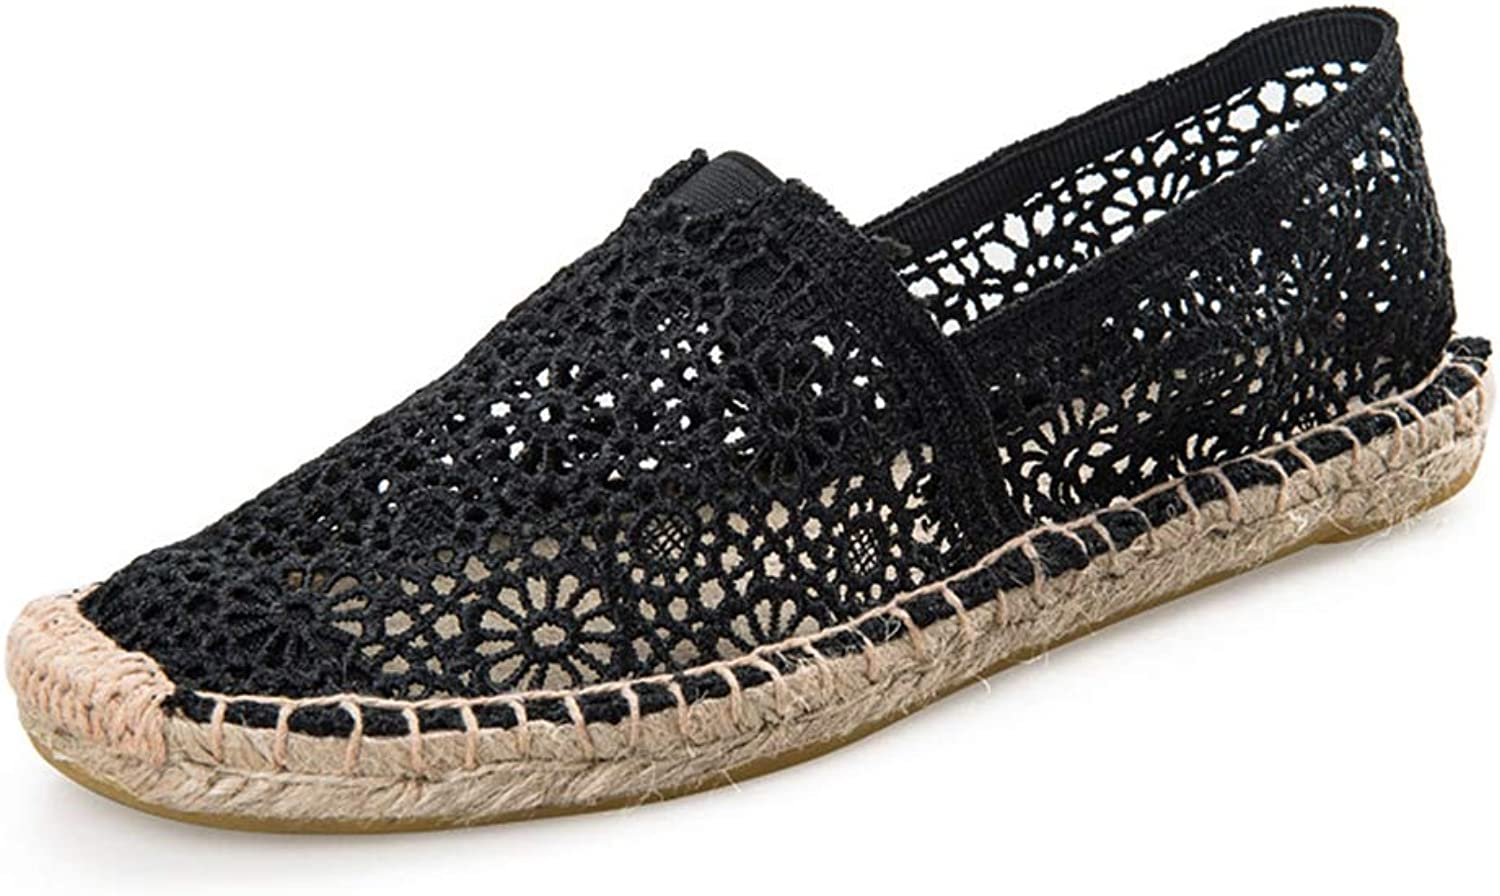 T-JULY Espadrilles Fishman shoes Summer Women Loafers Casual Lady Lace shoes Beige Elegant Woman Casual shoes Solid Embroider Flats